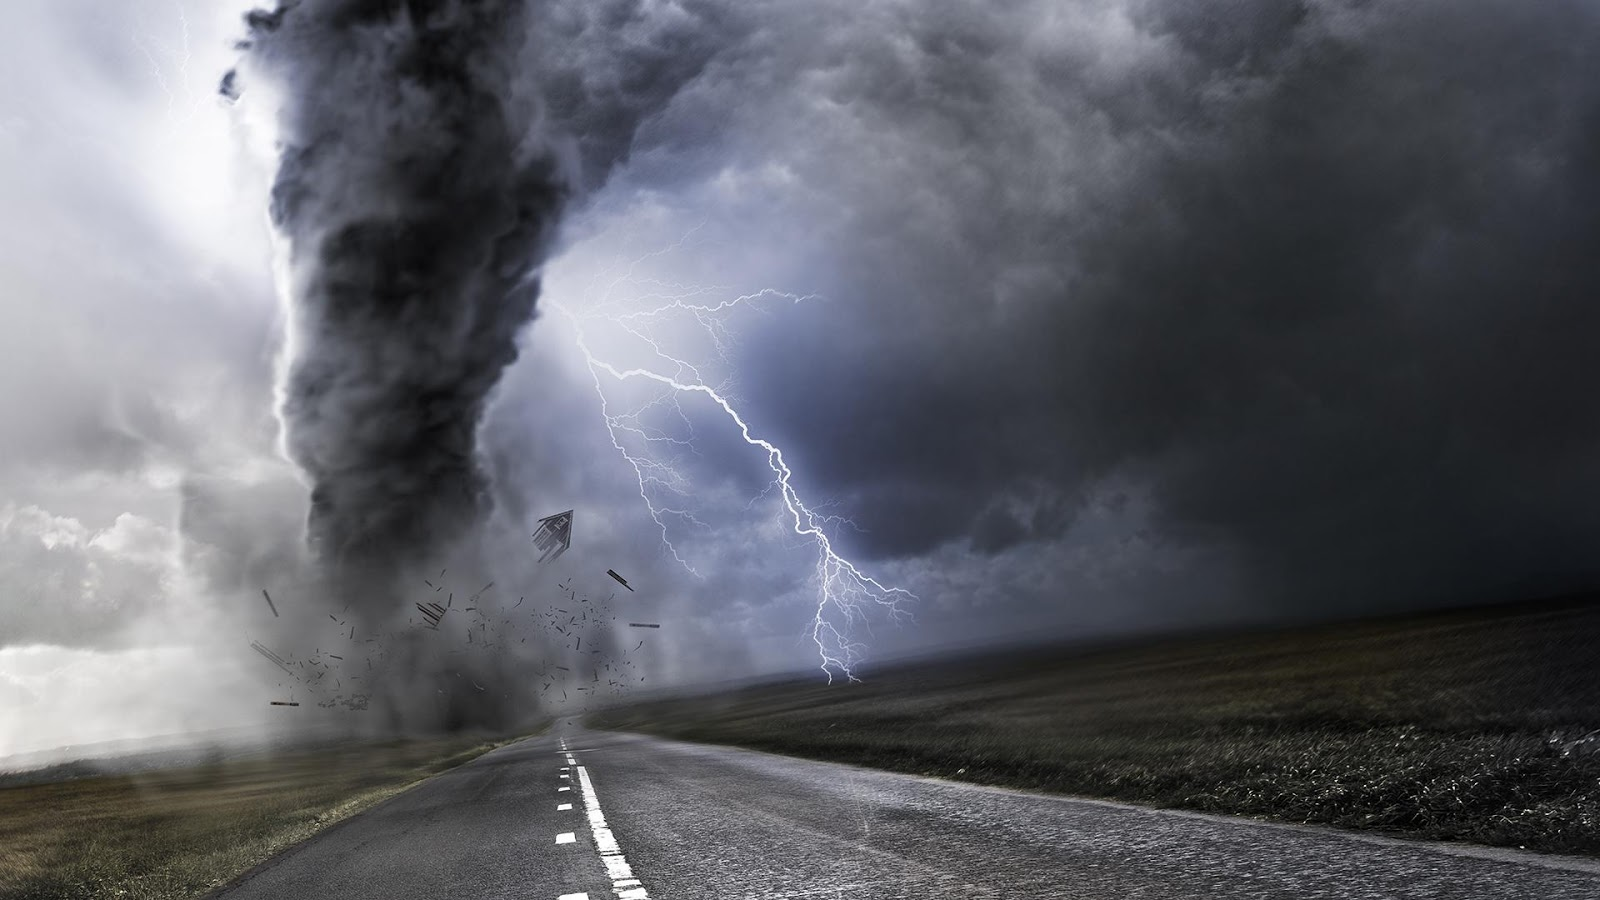 Storm Live Wallpaper   Android Apps on Google Play 1600x900